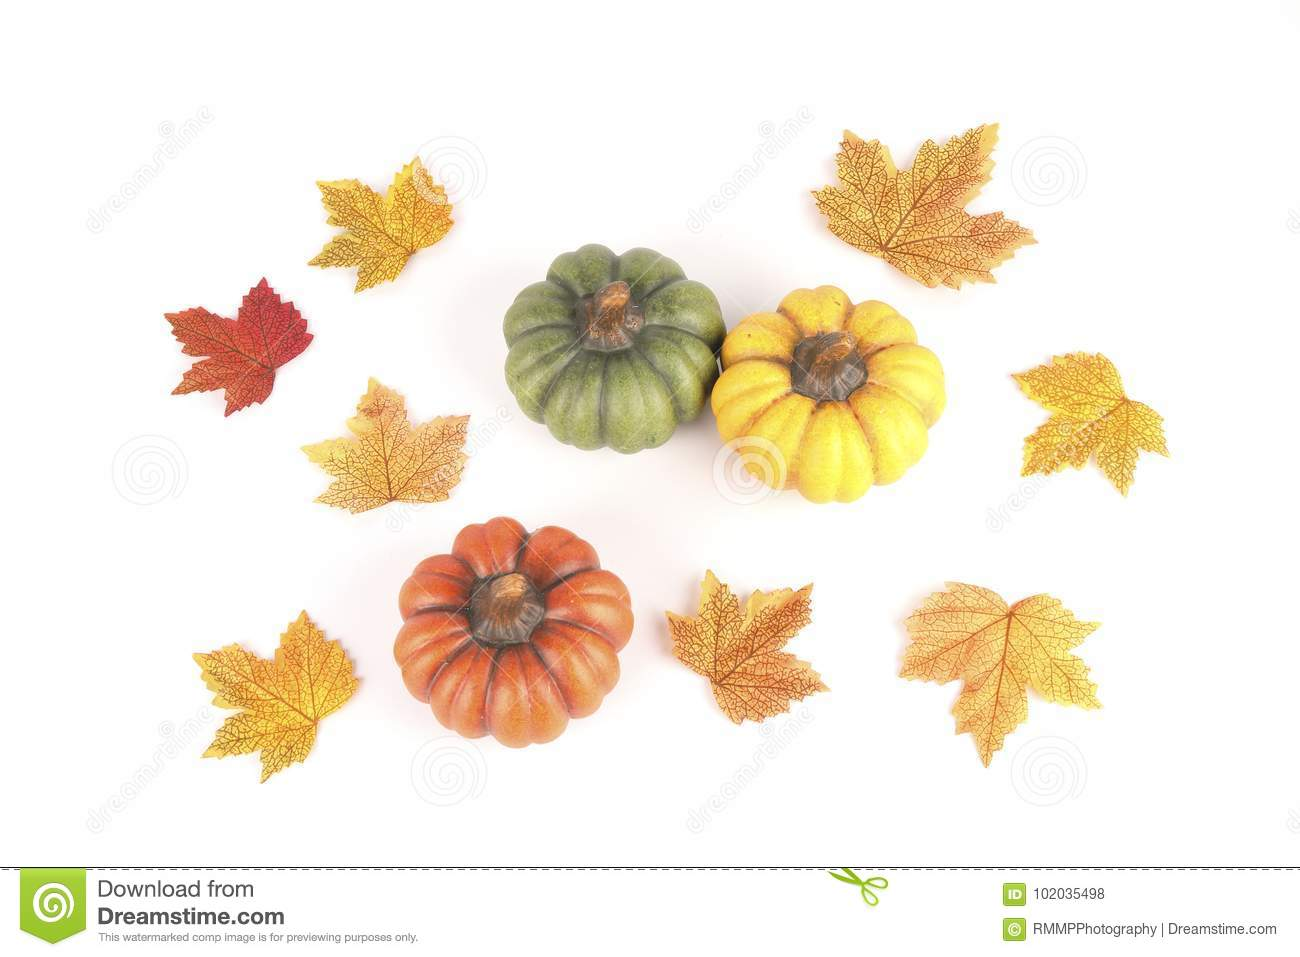 Three pumpkins made of clay between colorful leaves